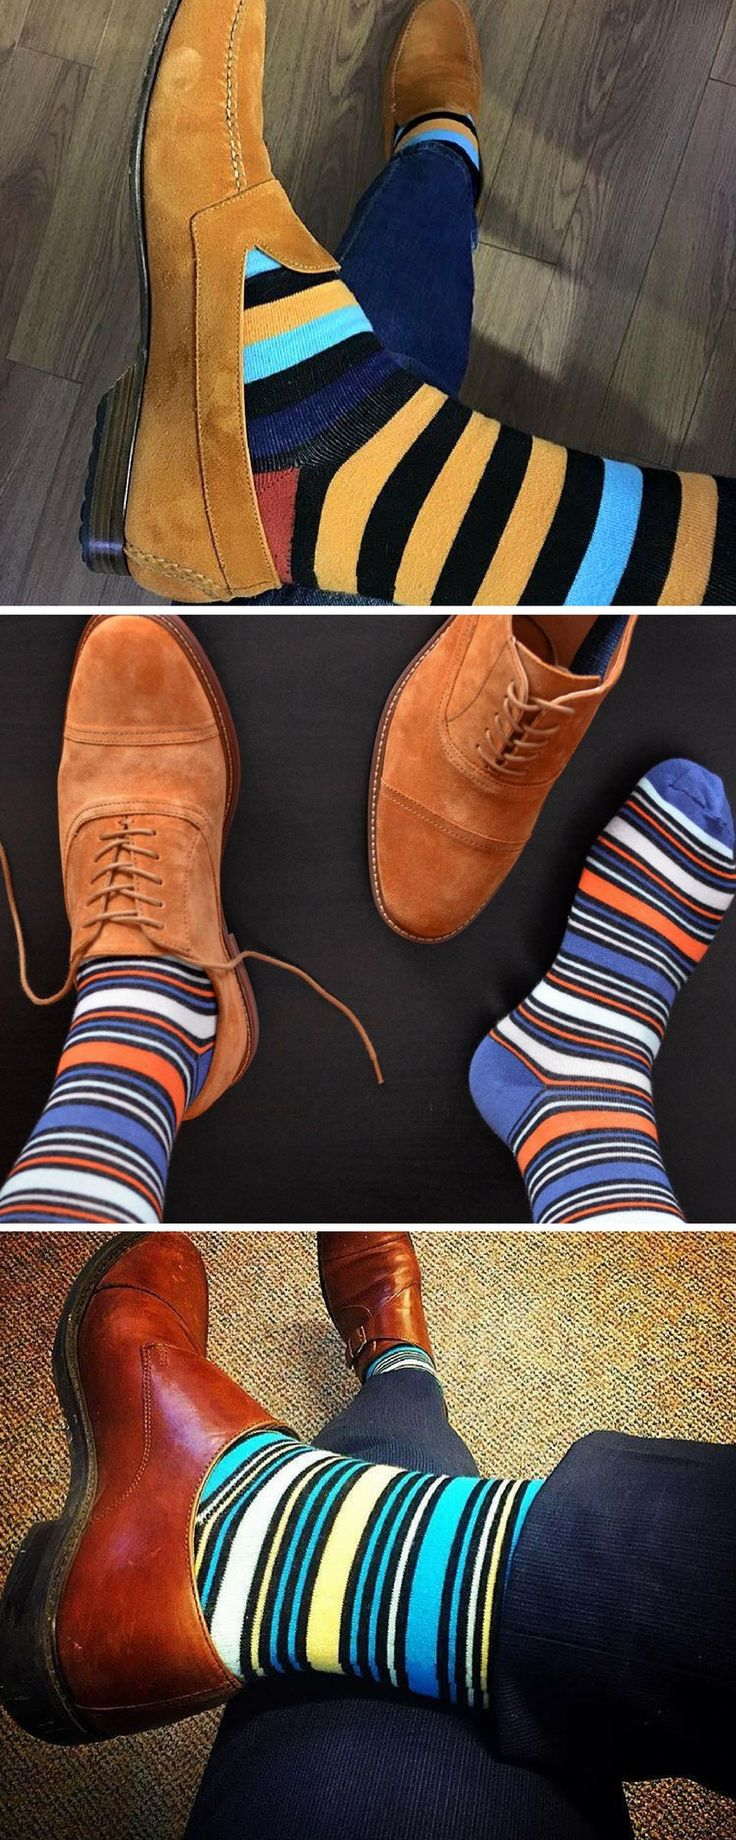 Just because the pattern is basic doesn't mean it should suck. We make sure that even basic patterns look awesome.  Soxy.com designs the coolest, most fun dress socks.